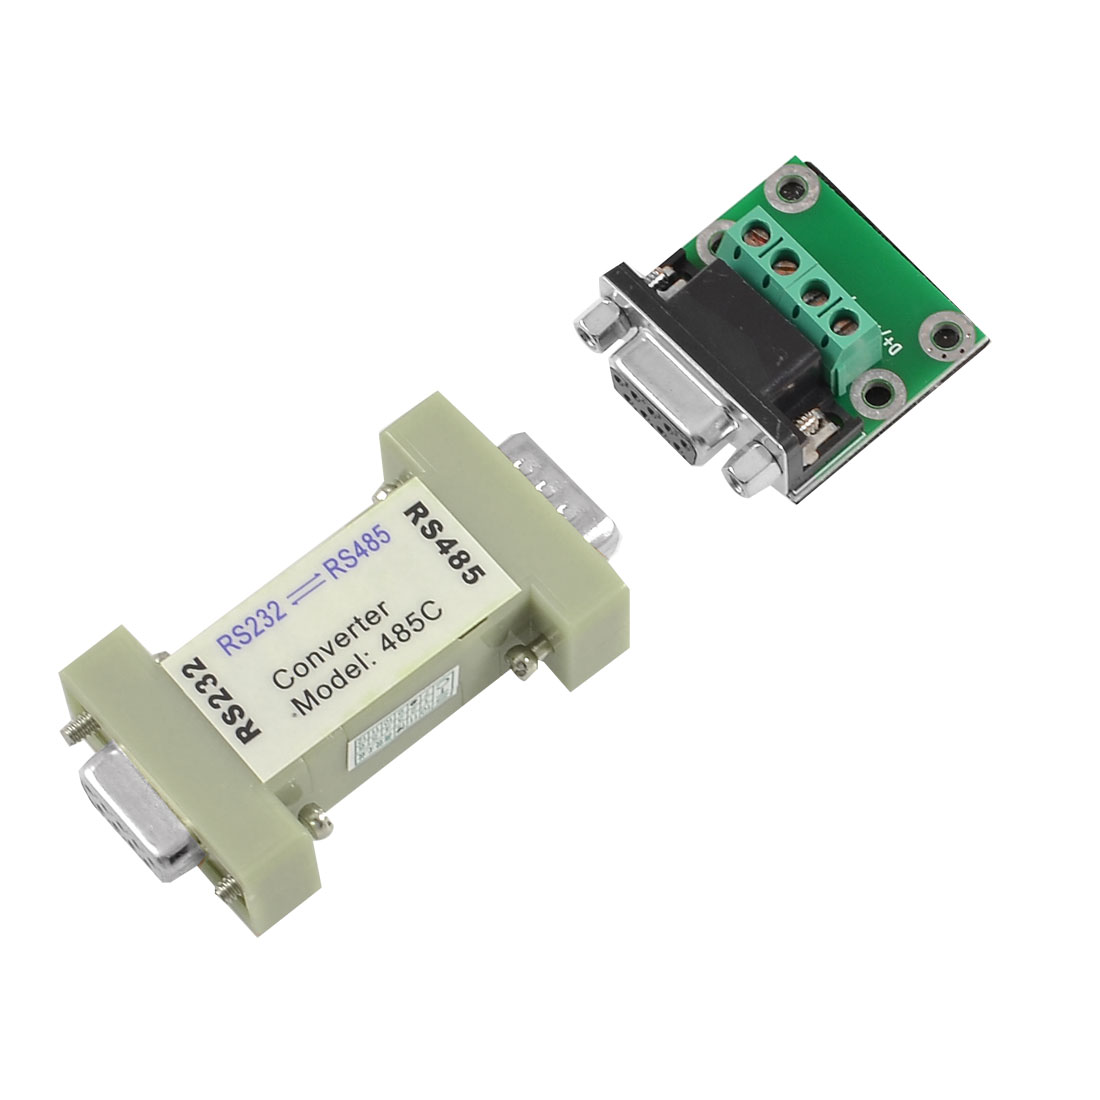 RS232 DB9 9 Pin Female to RS485 Data Transmitter Interface Adapter